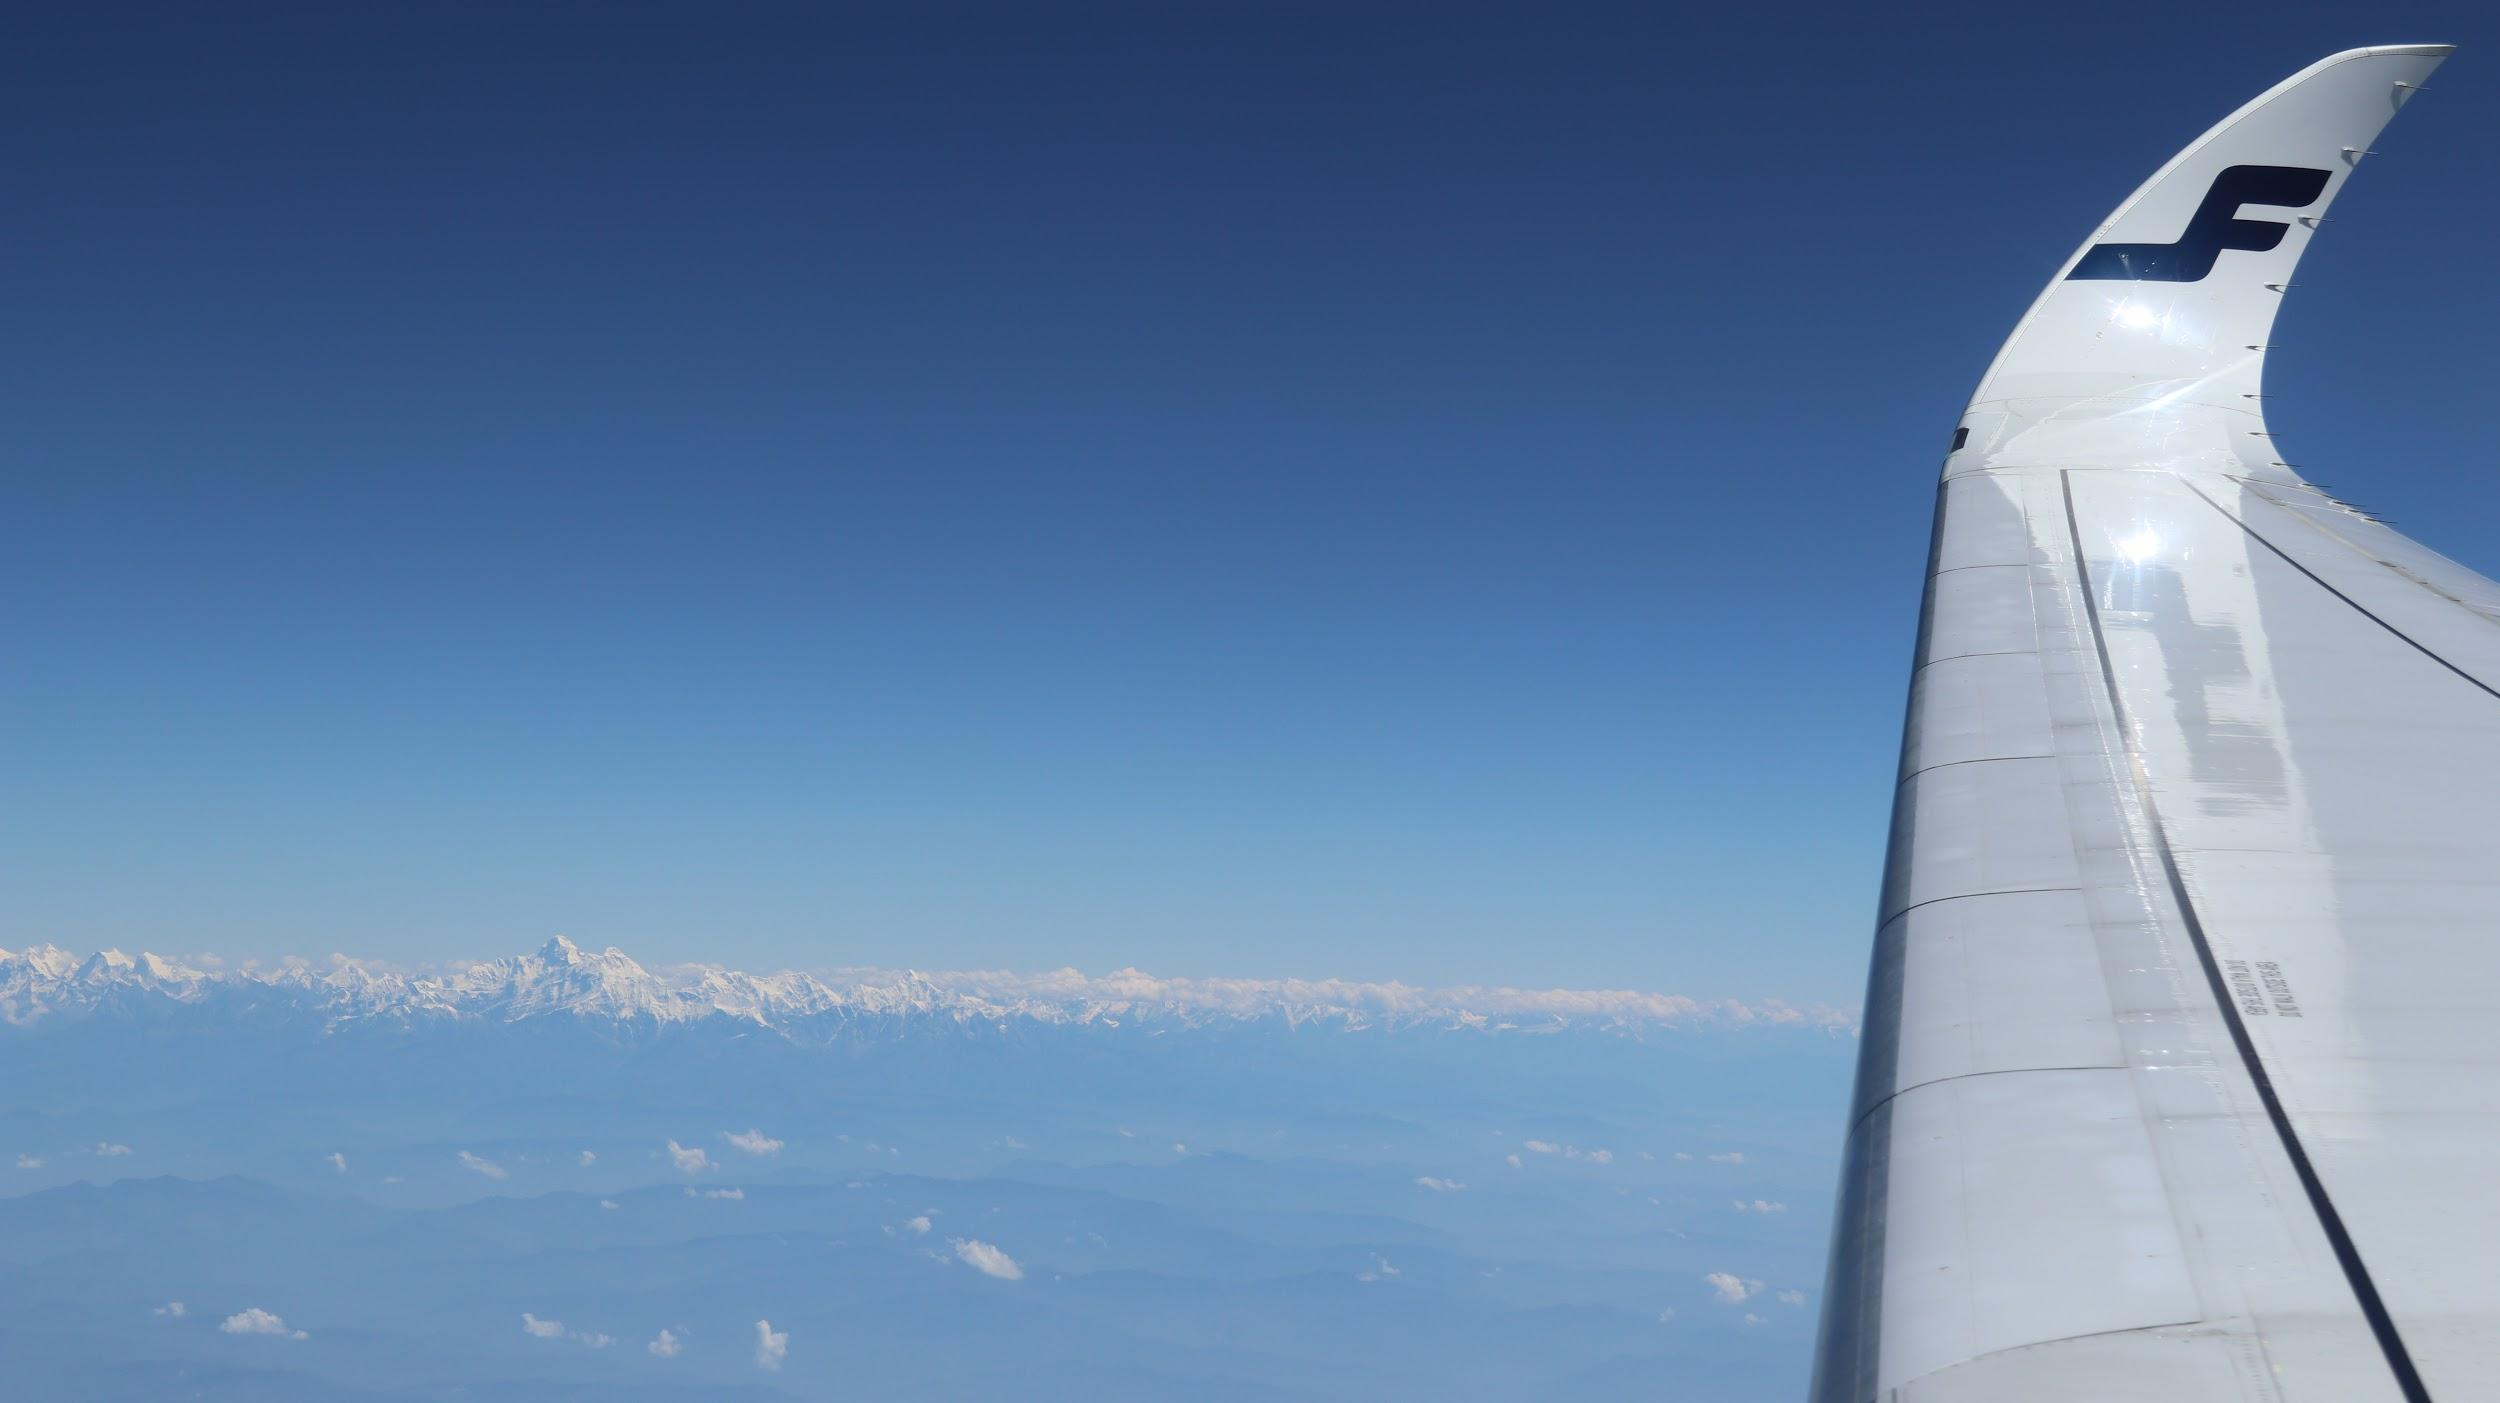 View of Mt. Everest from Finnair flight